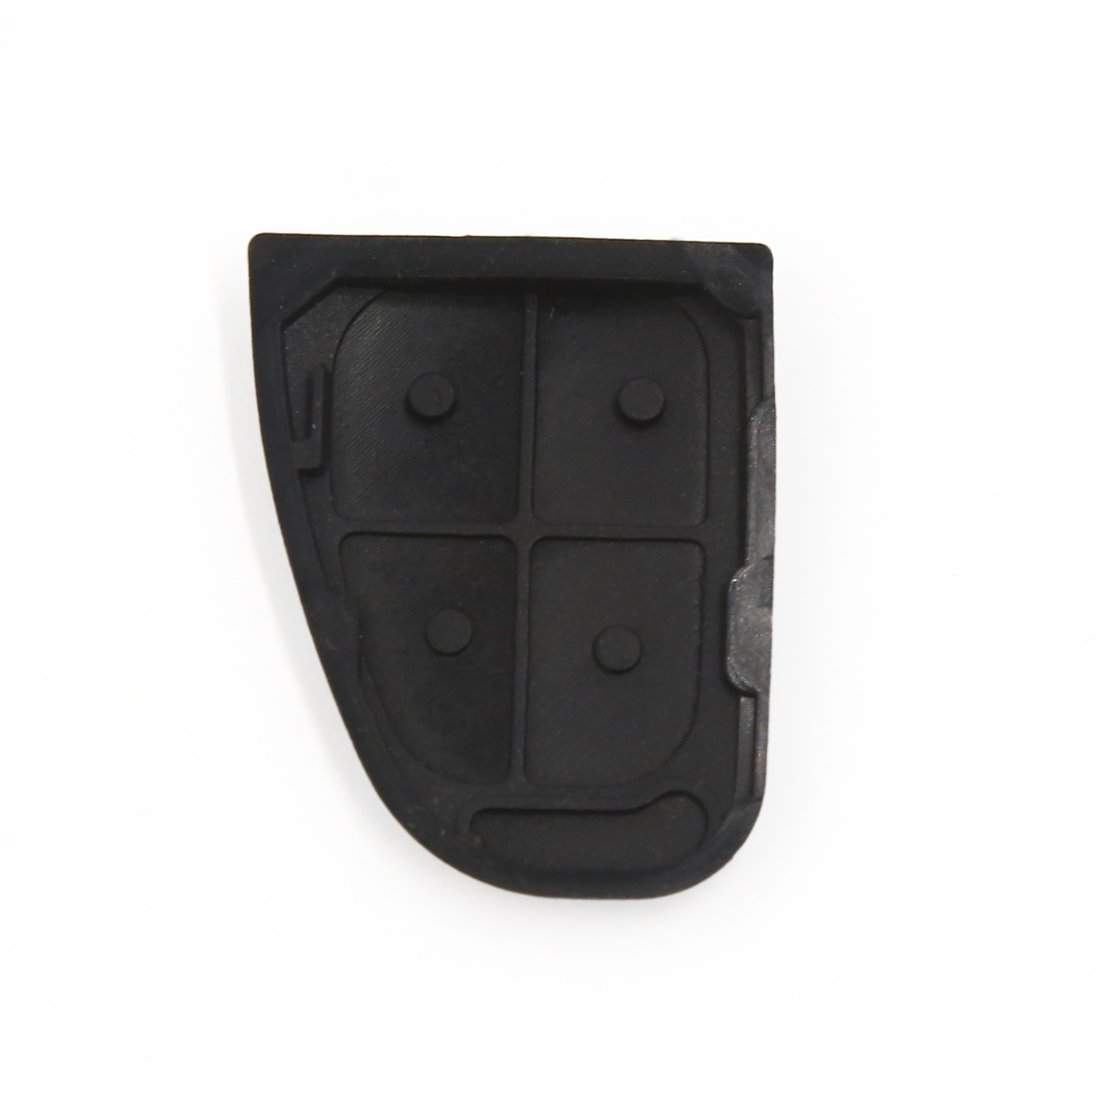 Uxcell a16070800ux0036 Remote Key Button Pad Unknown